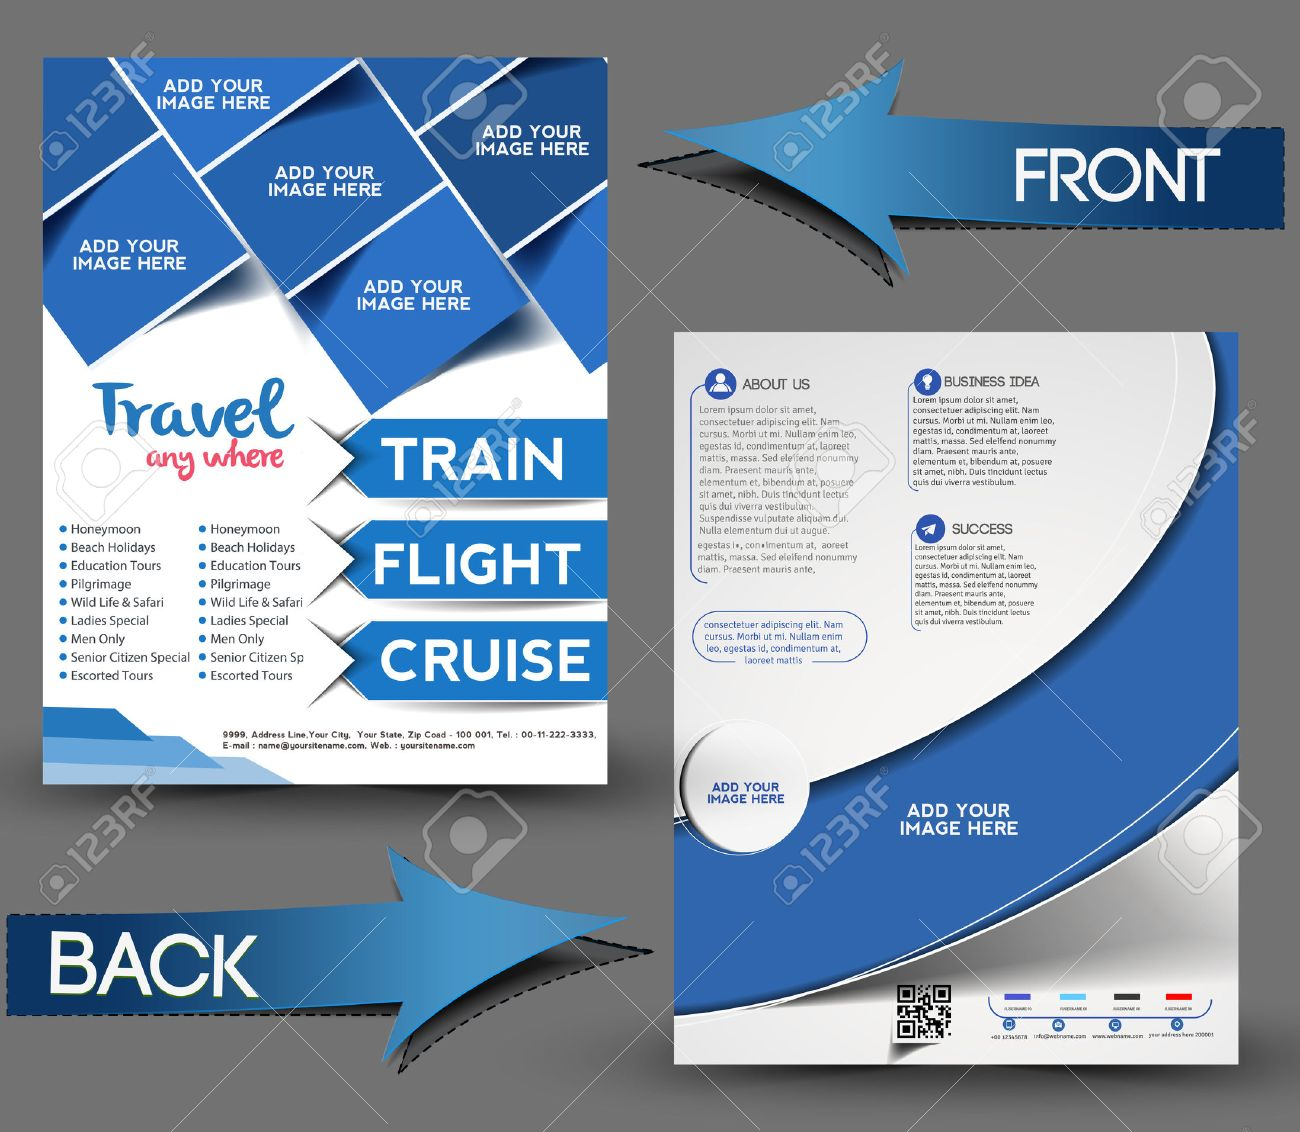 travel center front back flyer template royalty cliparts travel center front back flyer template stock vector 28394250